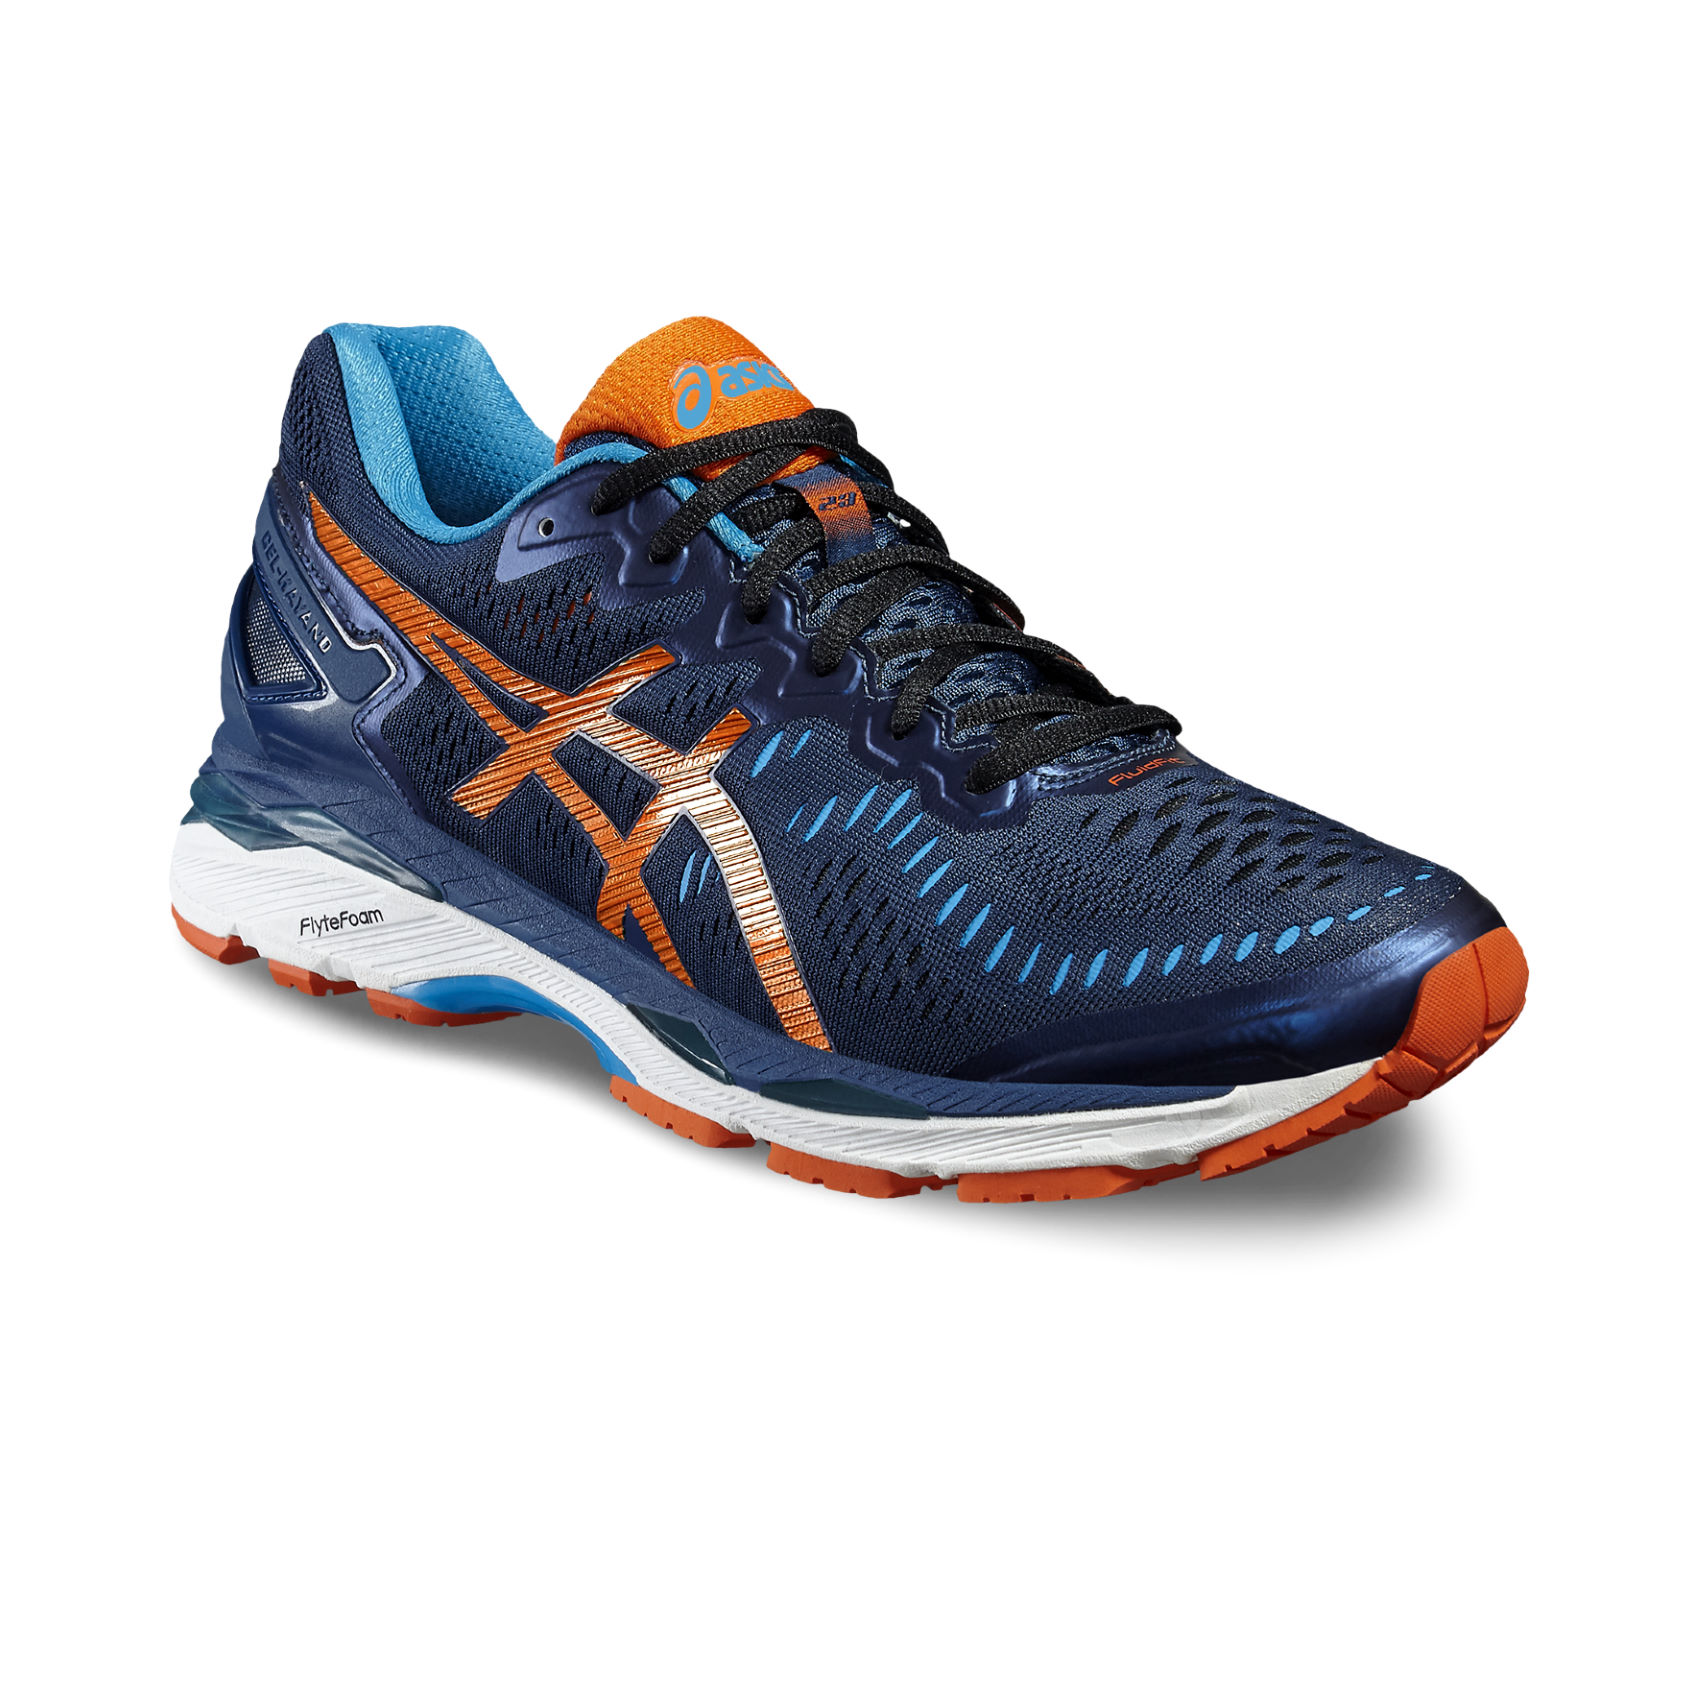 Best Rated Volleyball Shoes